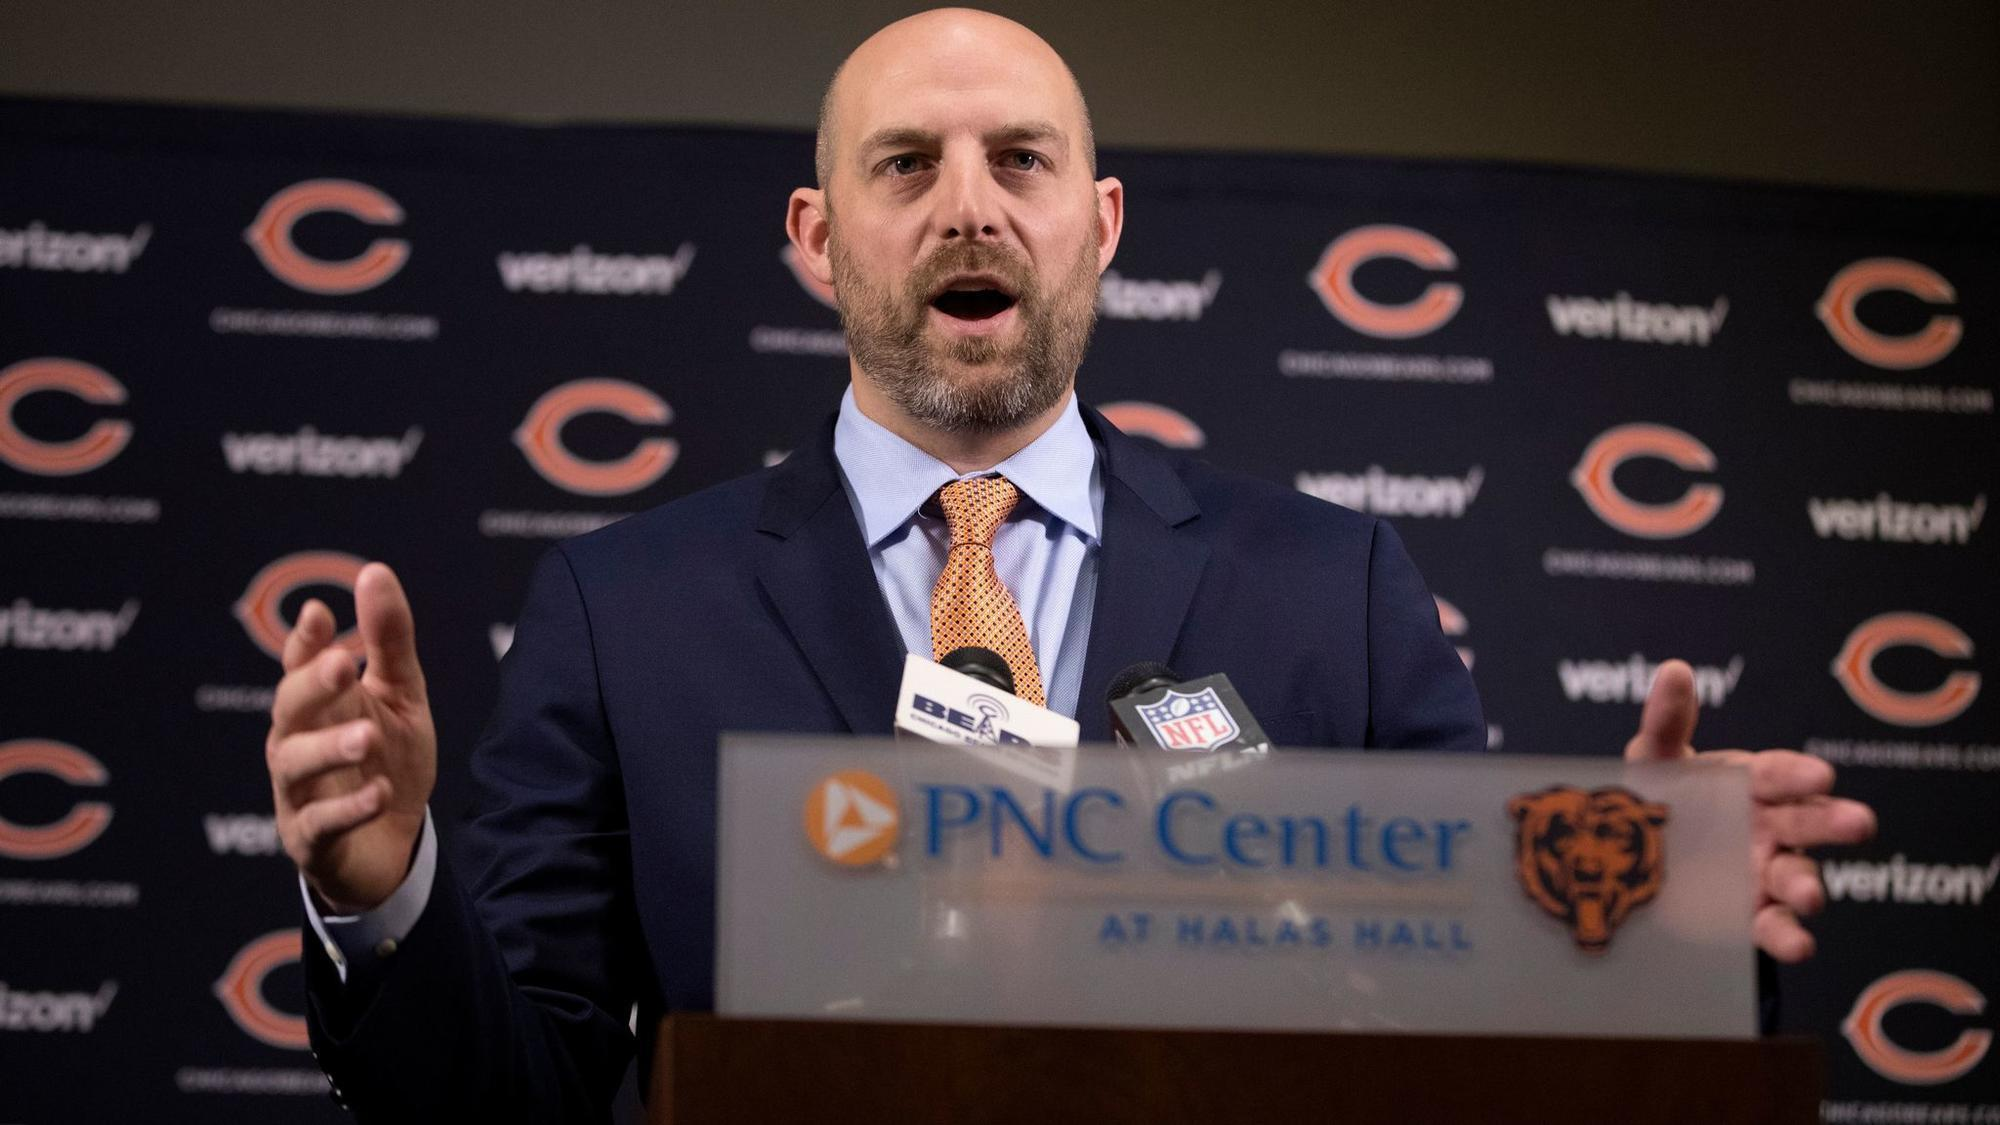 f9c4a584 The Chicago Bears hired former Chiefs OC Matt Nagy as their head coach, who  promptly tabbed former Oregon head coach Mark Helfrich as his offensive ...